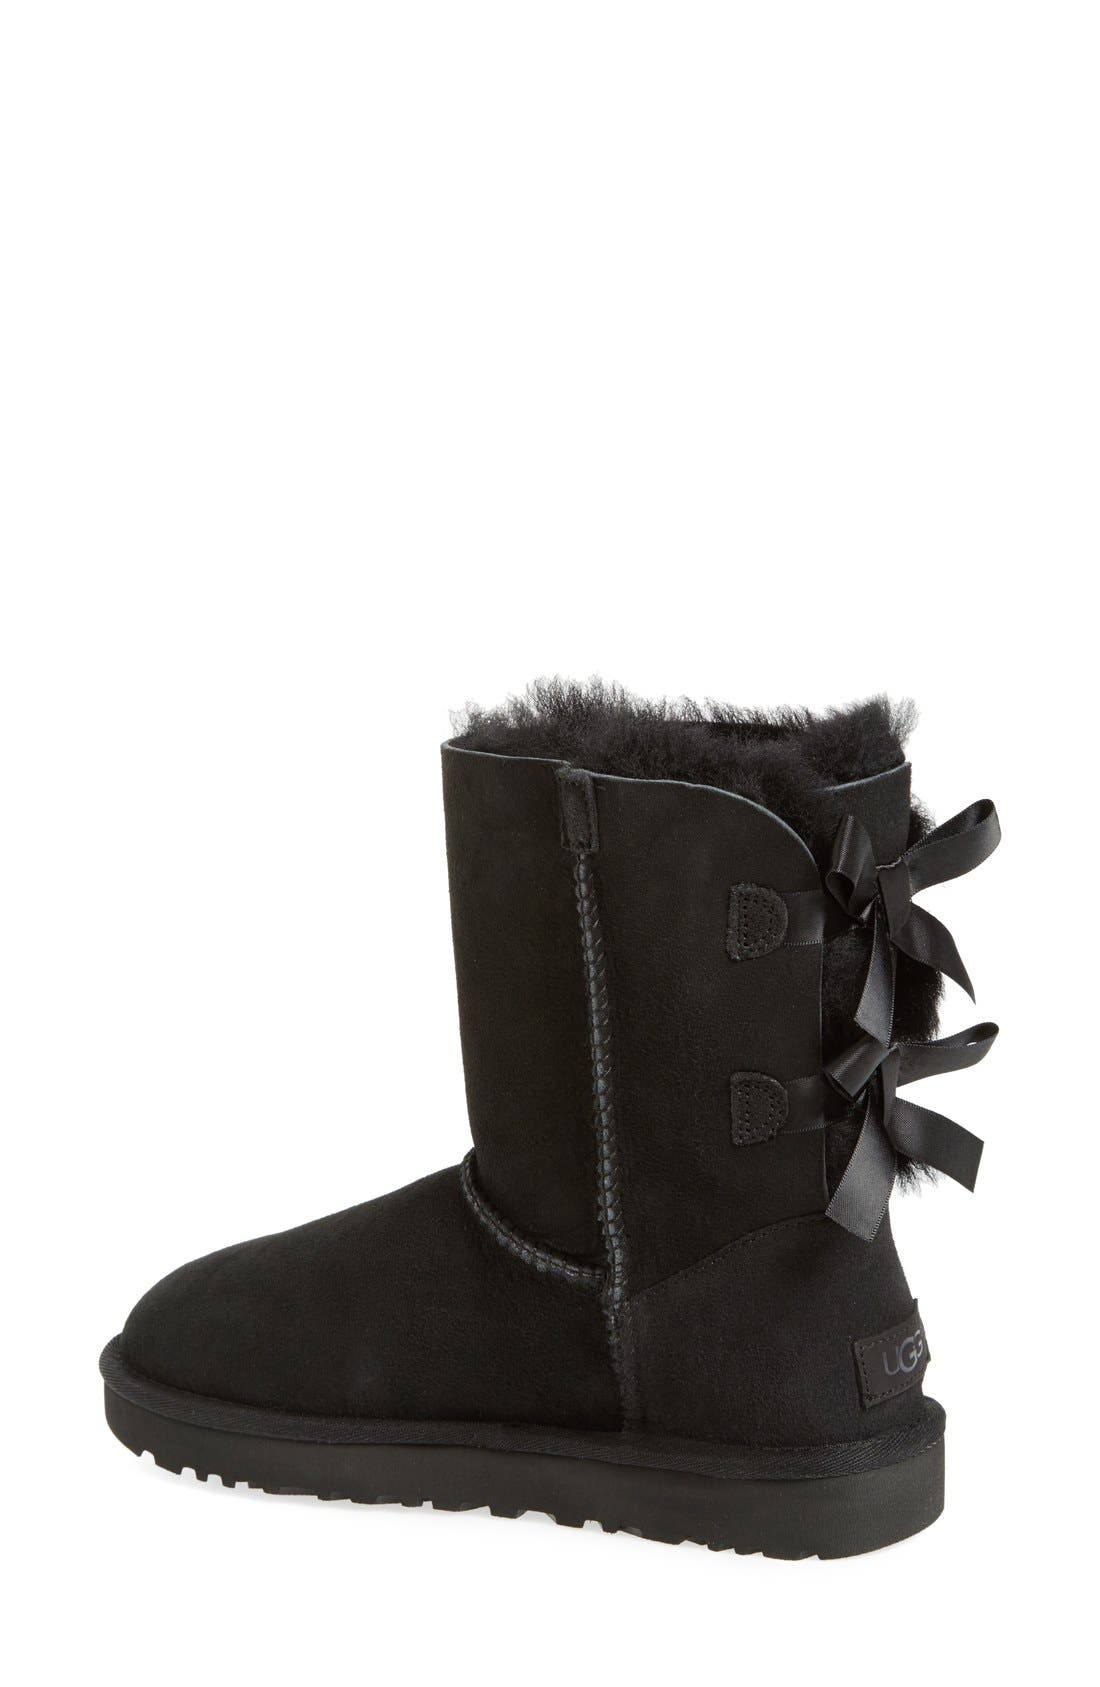 UGG<SUP>®</SUP>, Bailey Bow II Genuine Shearling Boot, Alternate thumbnail 2, color, BLACK SUEDE